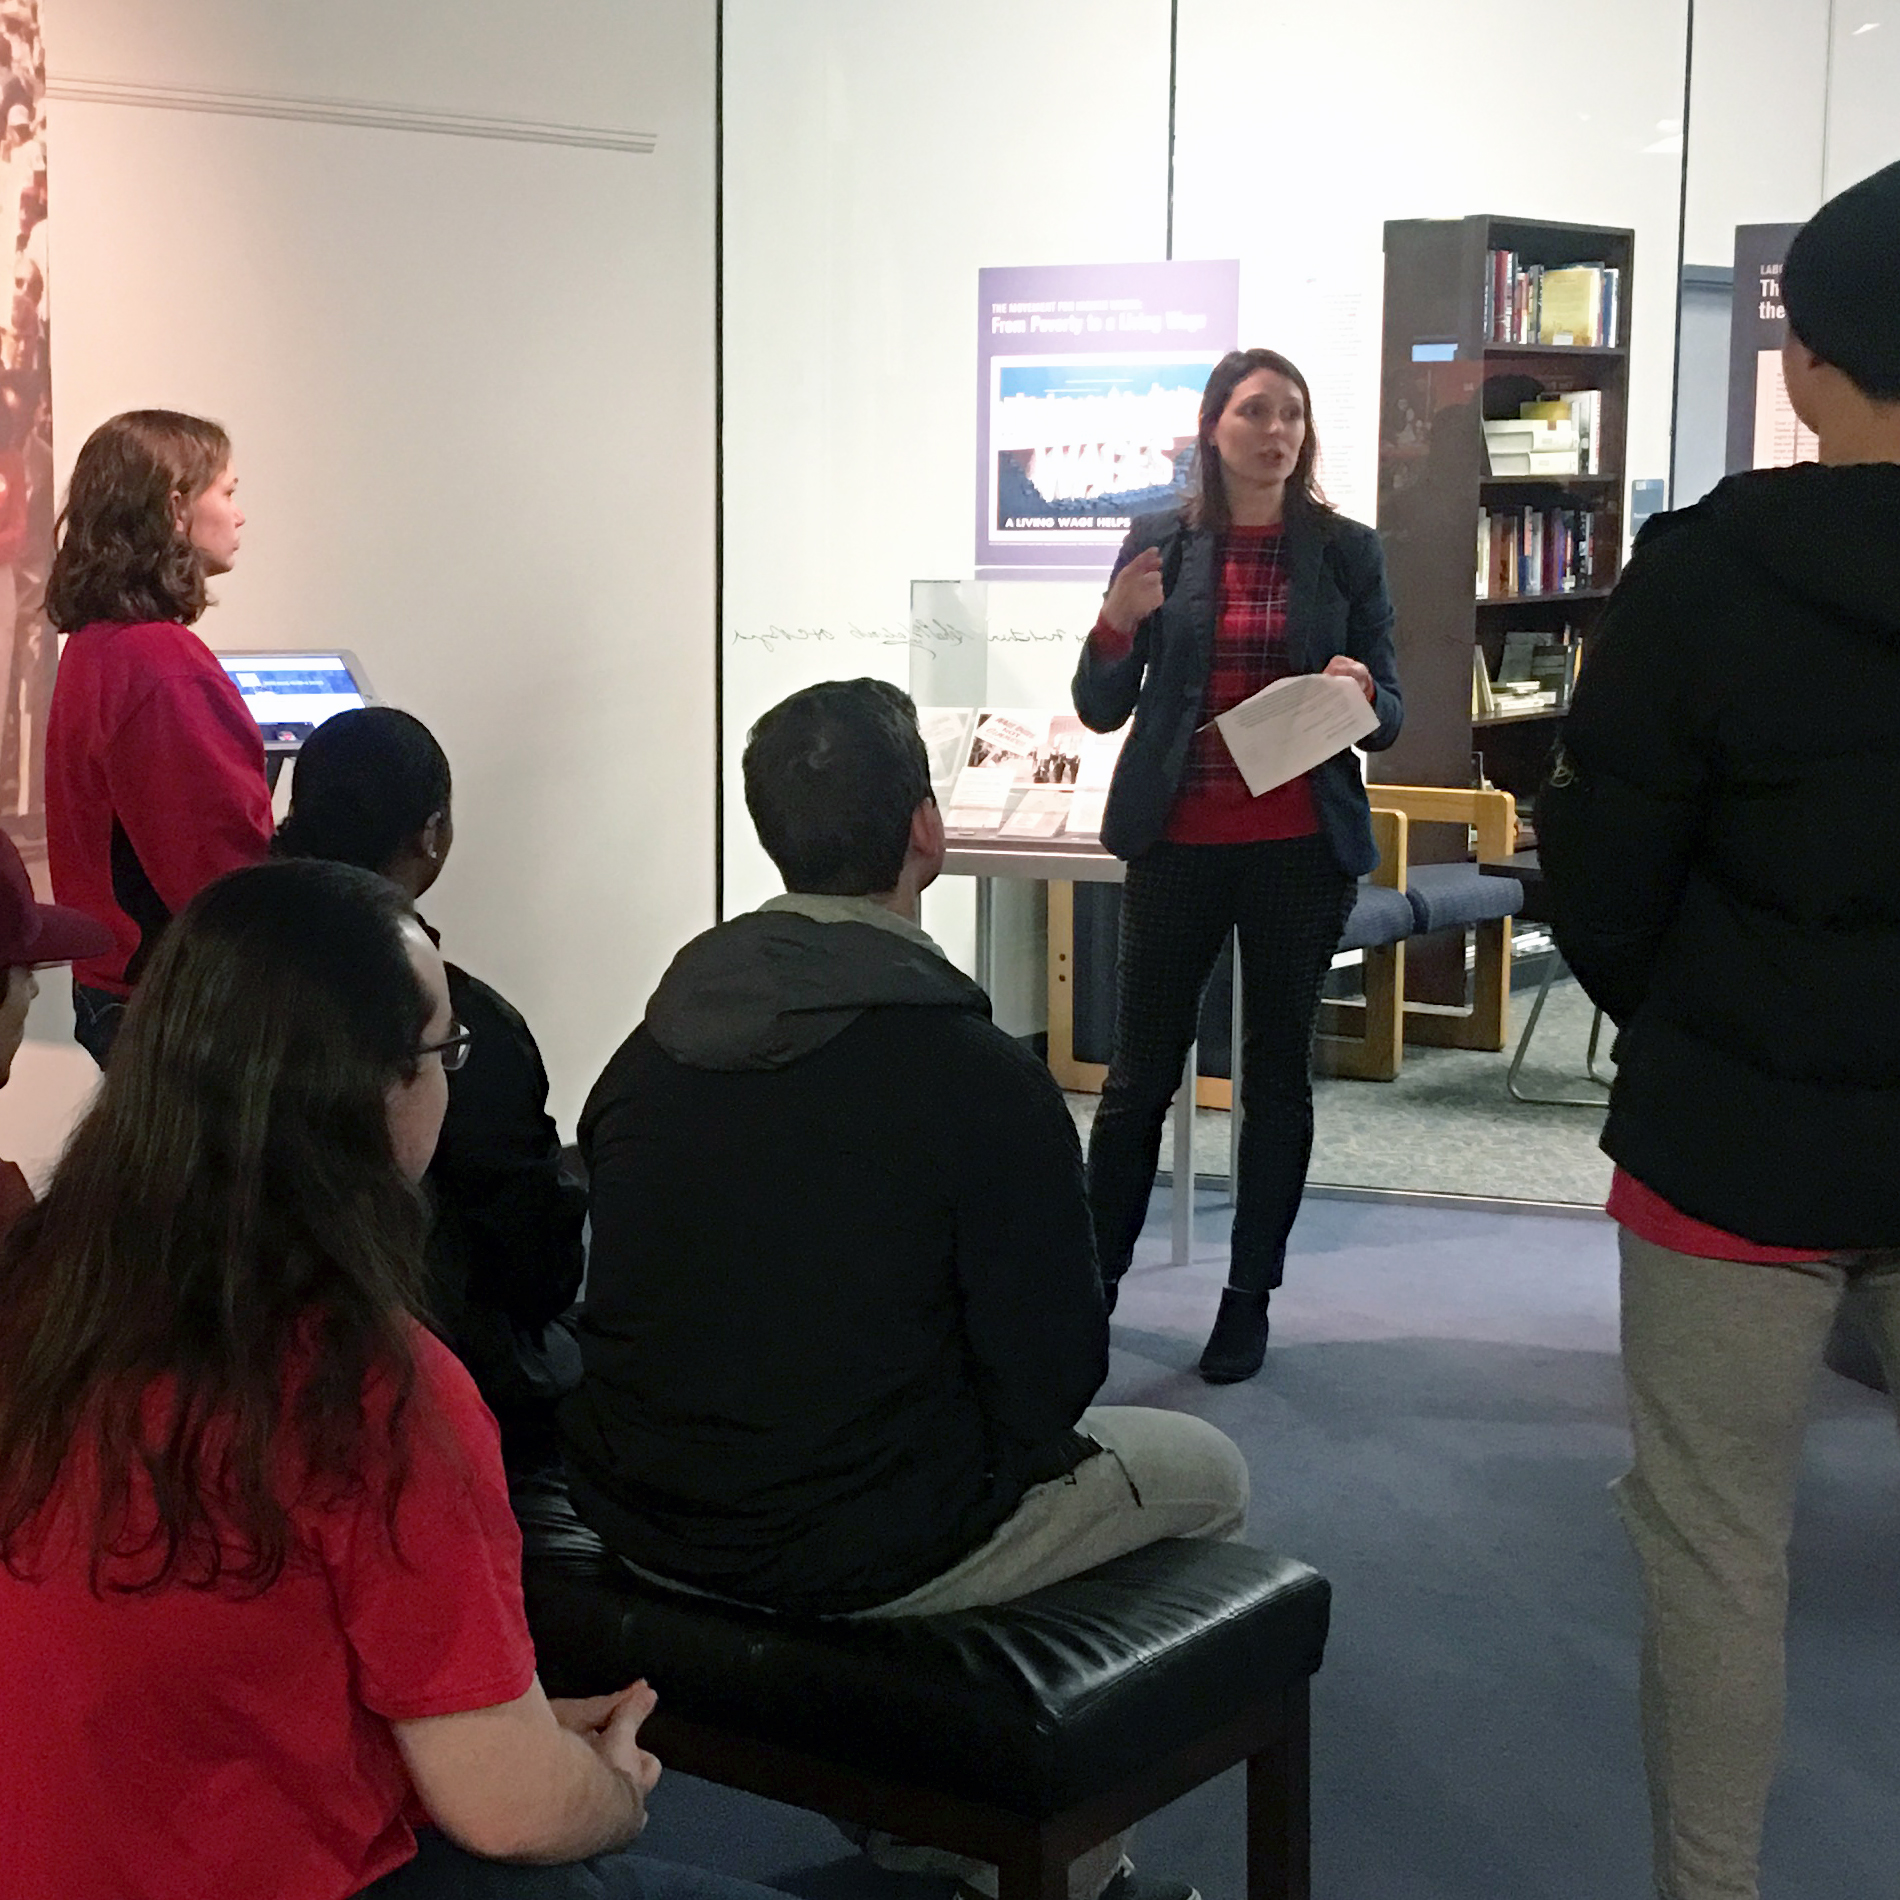 Archivist teaching a class in the exhibition gallery